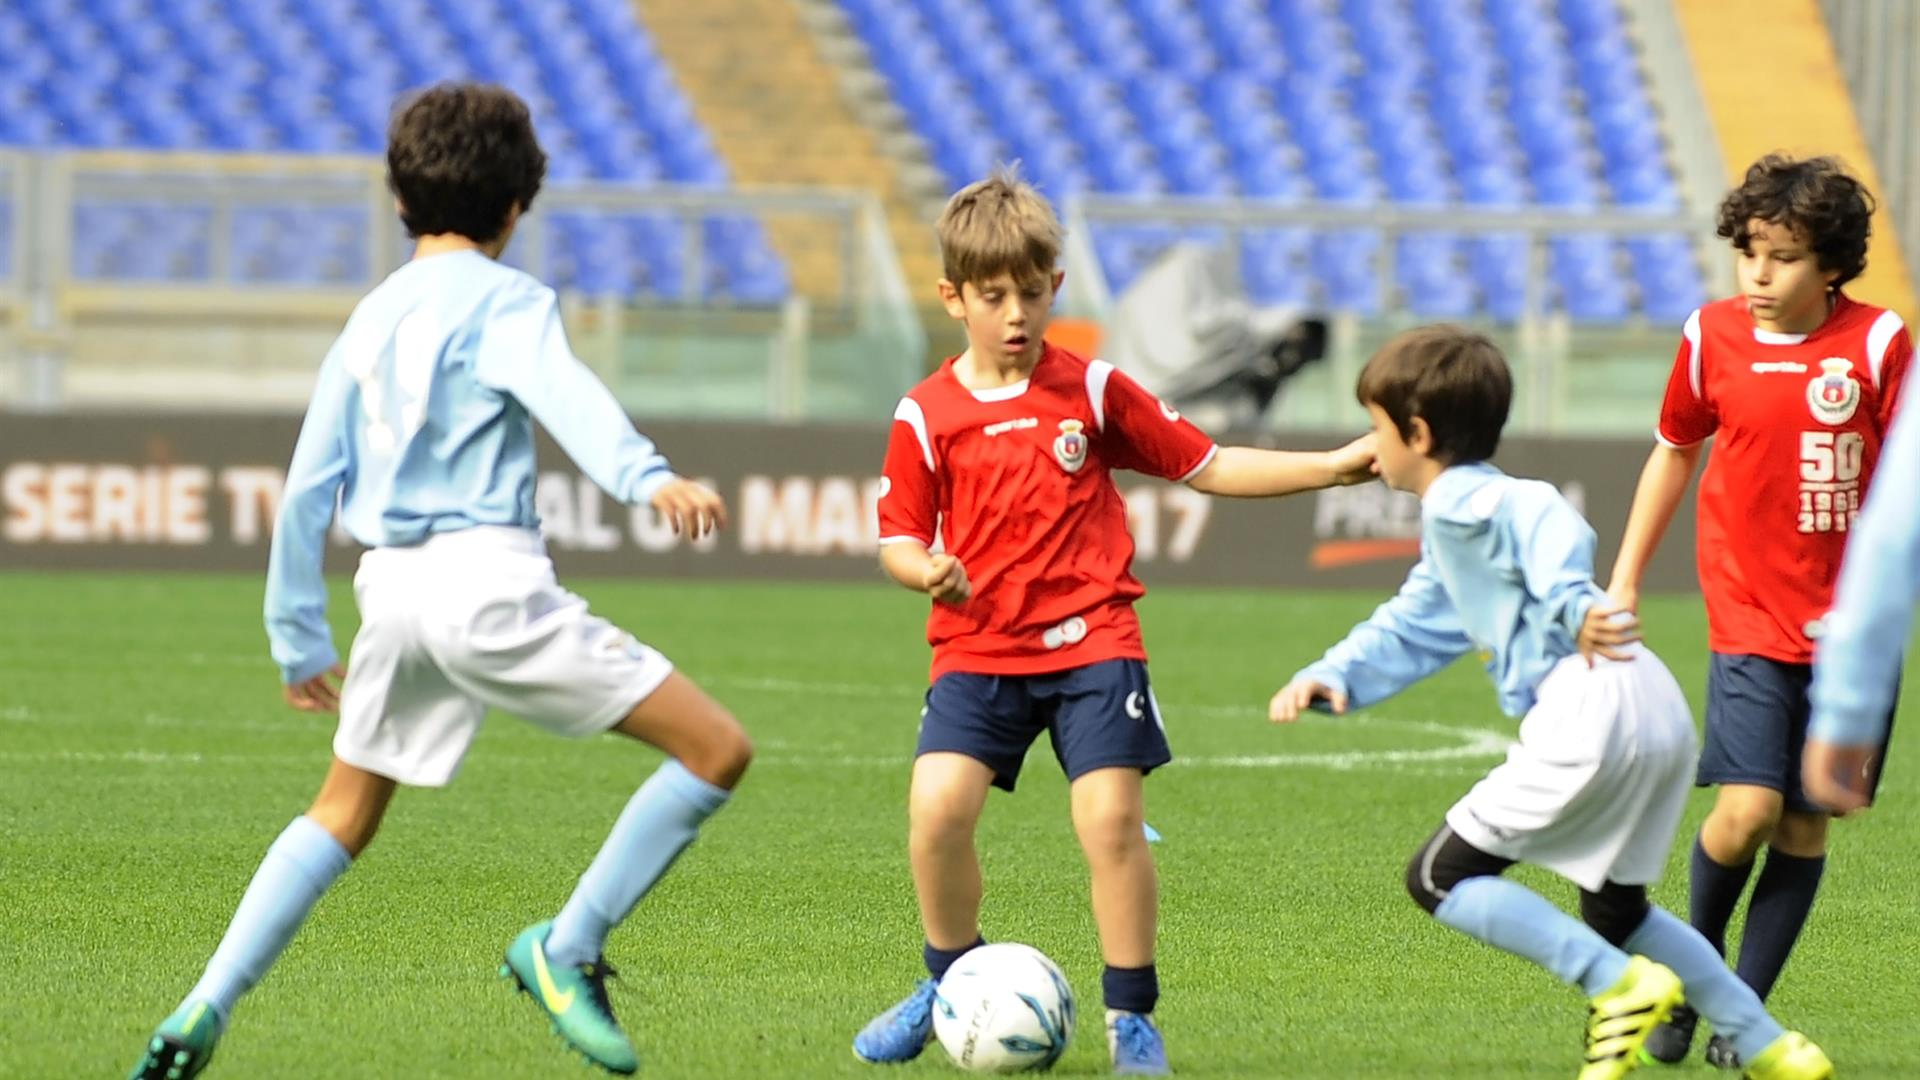 Calcio Bambini Marco Rosi:Getty Images